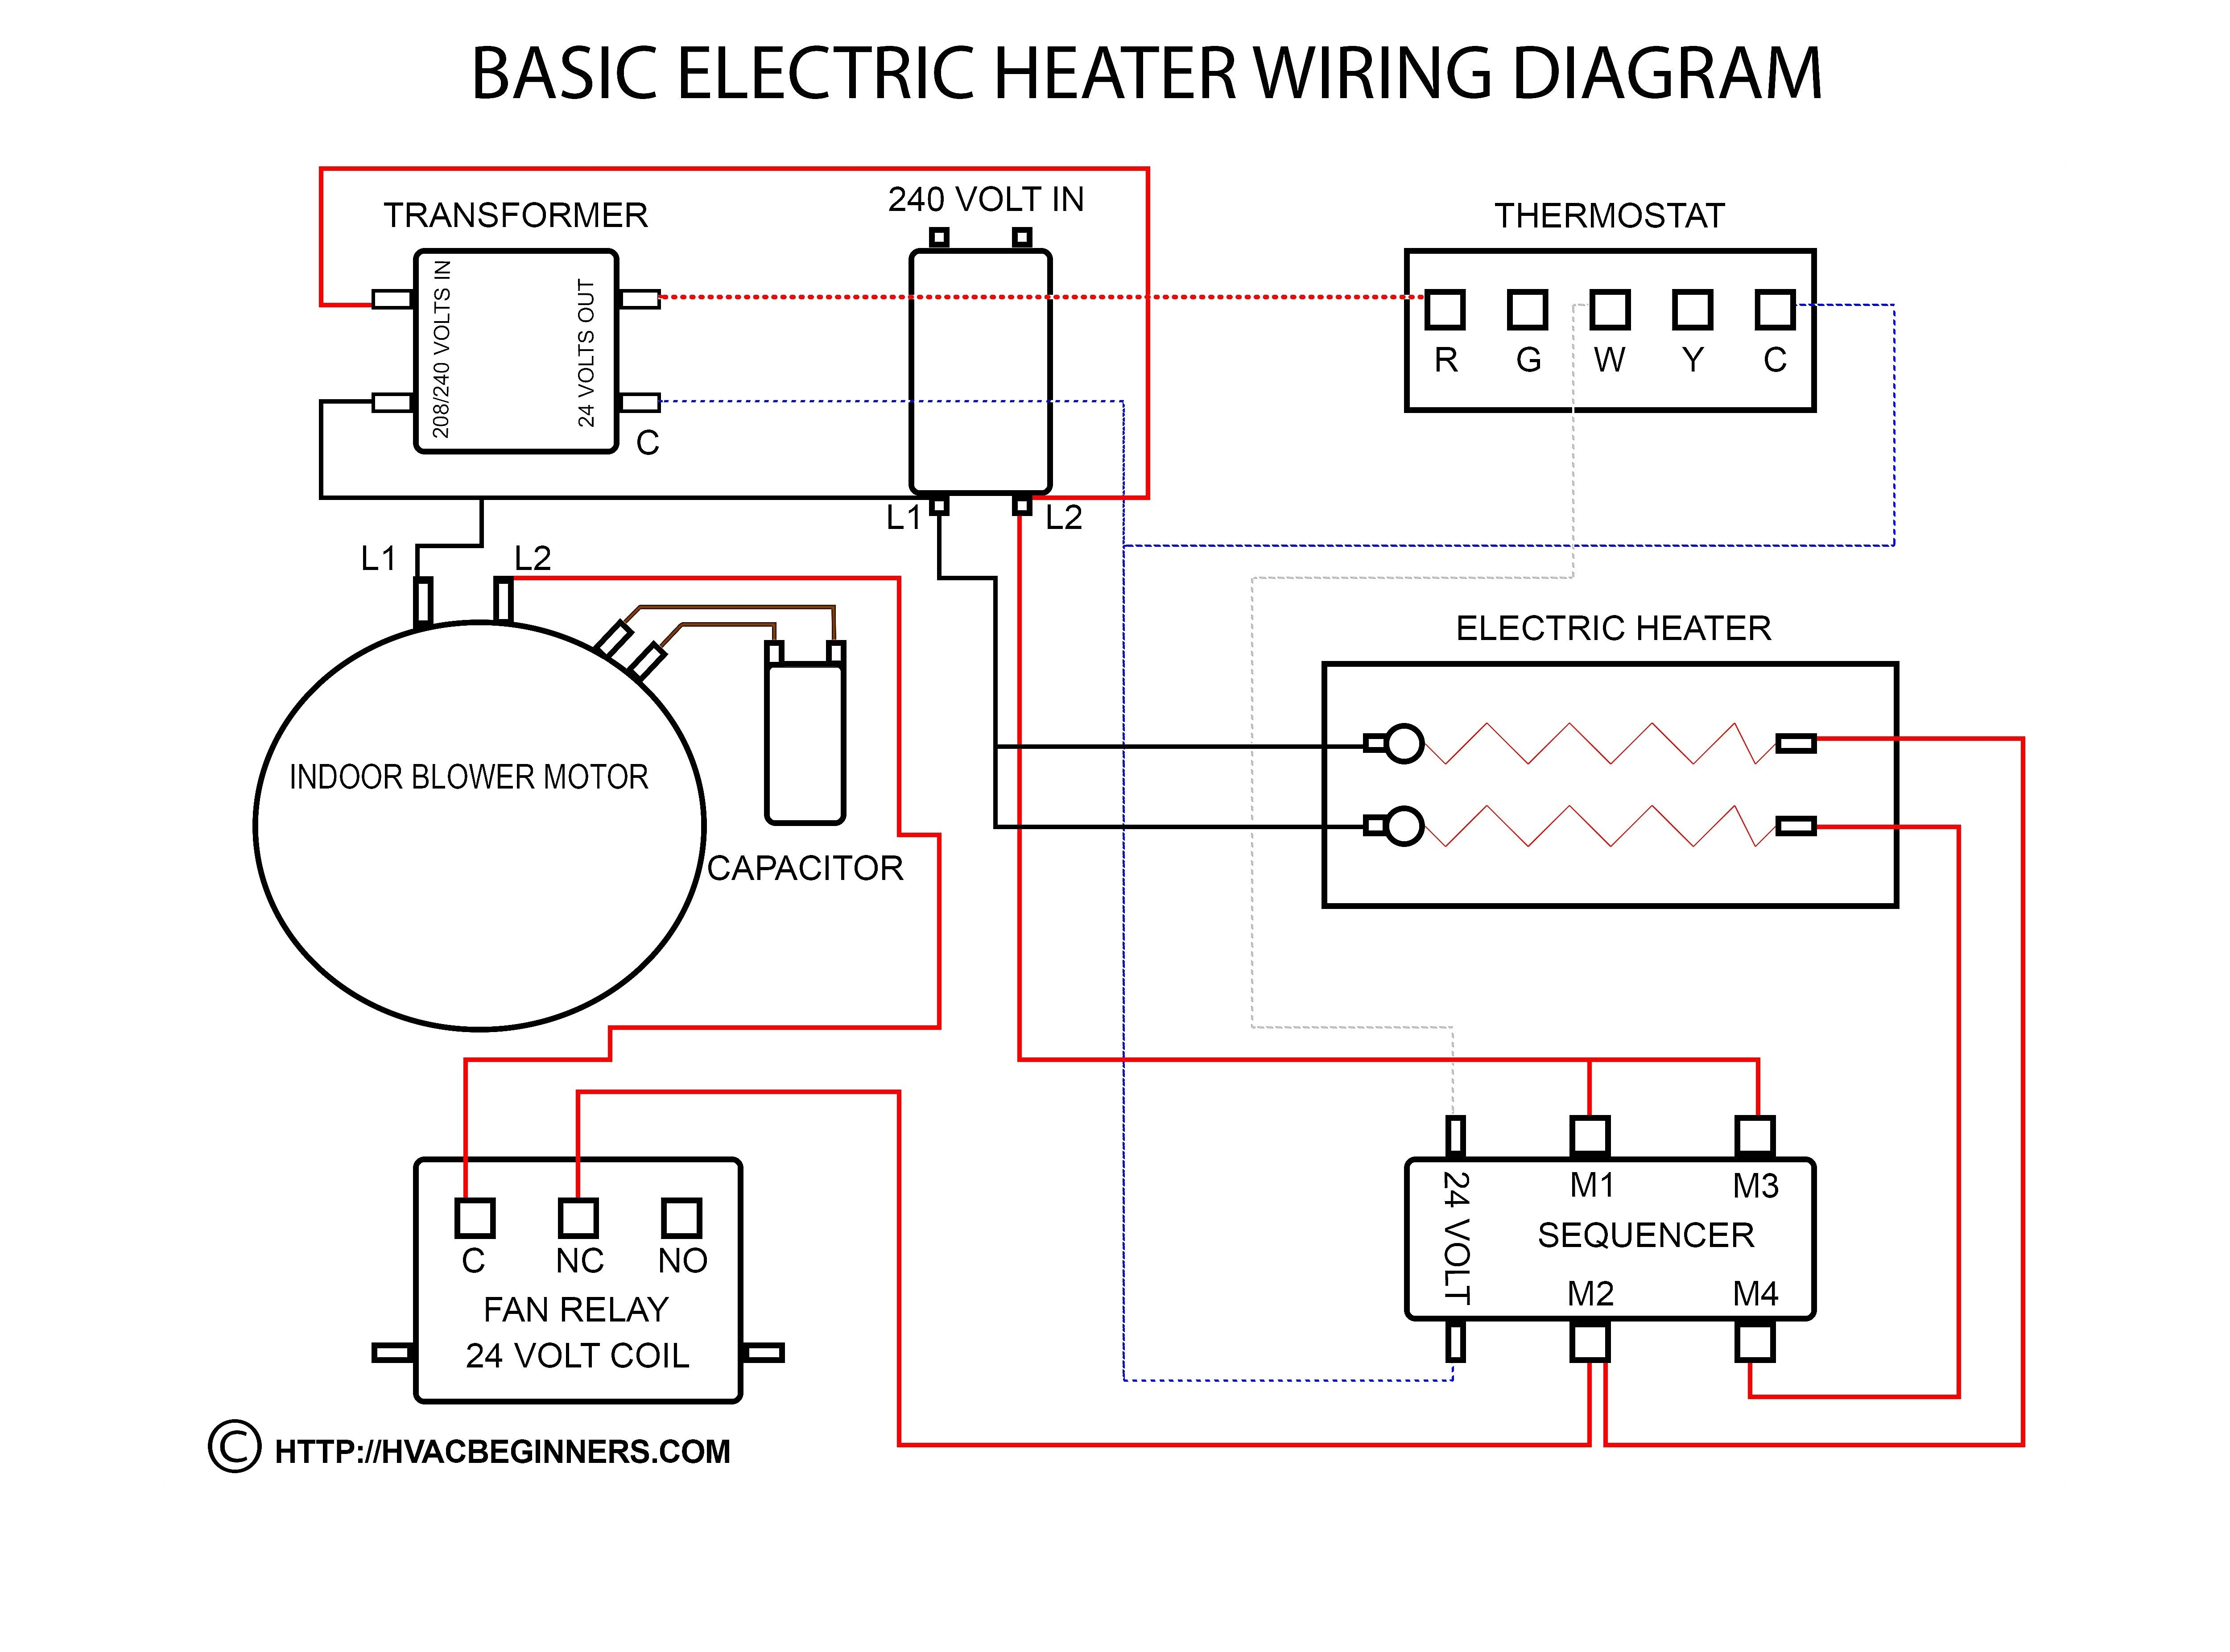 [SCHEMATICS_4CA]  42F0EA Rv Gas Furnace Wiring Diagram | Wiring Library | Industrial Wiring Diagram 208 |  | Wiring Library